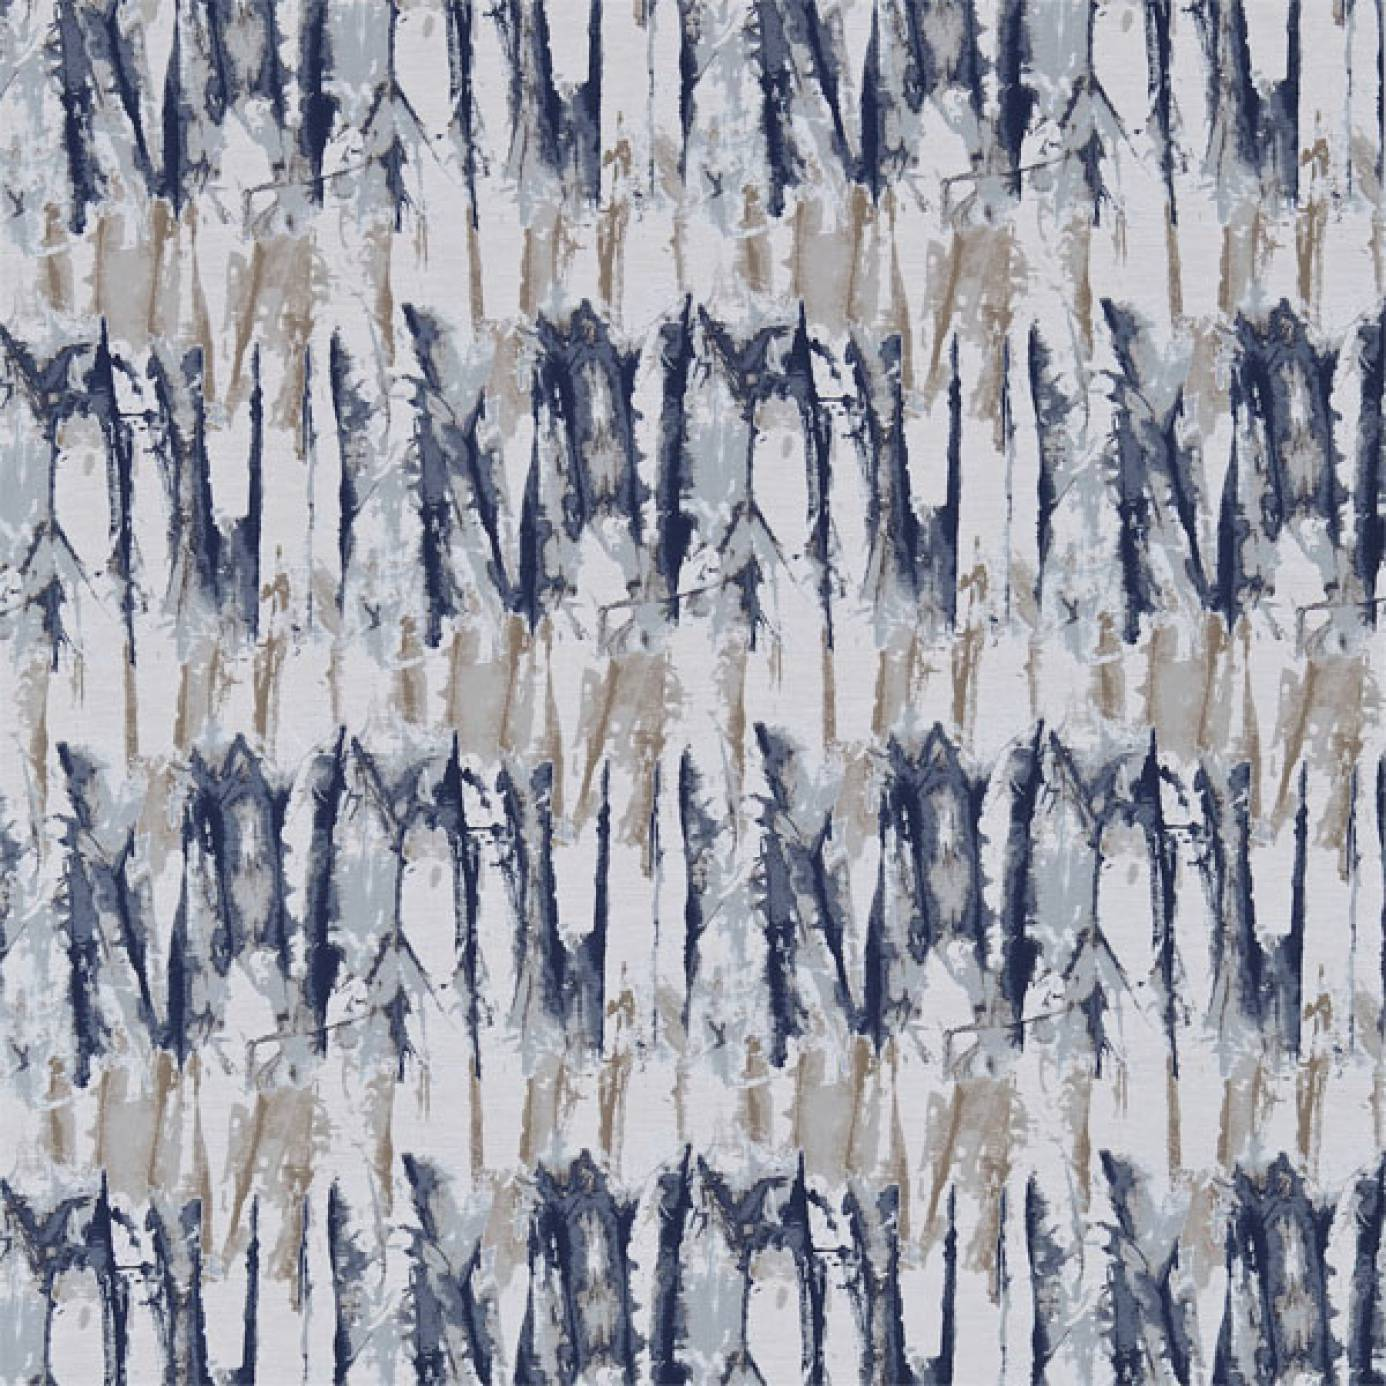 Islamic Home Decor Uk Curtains In Takara Fabric Indigo Denim 131369